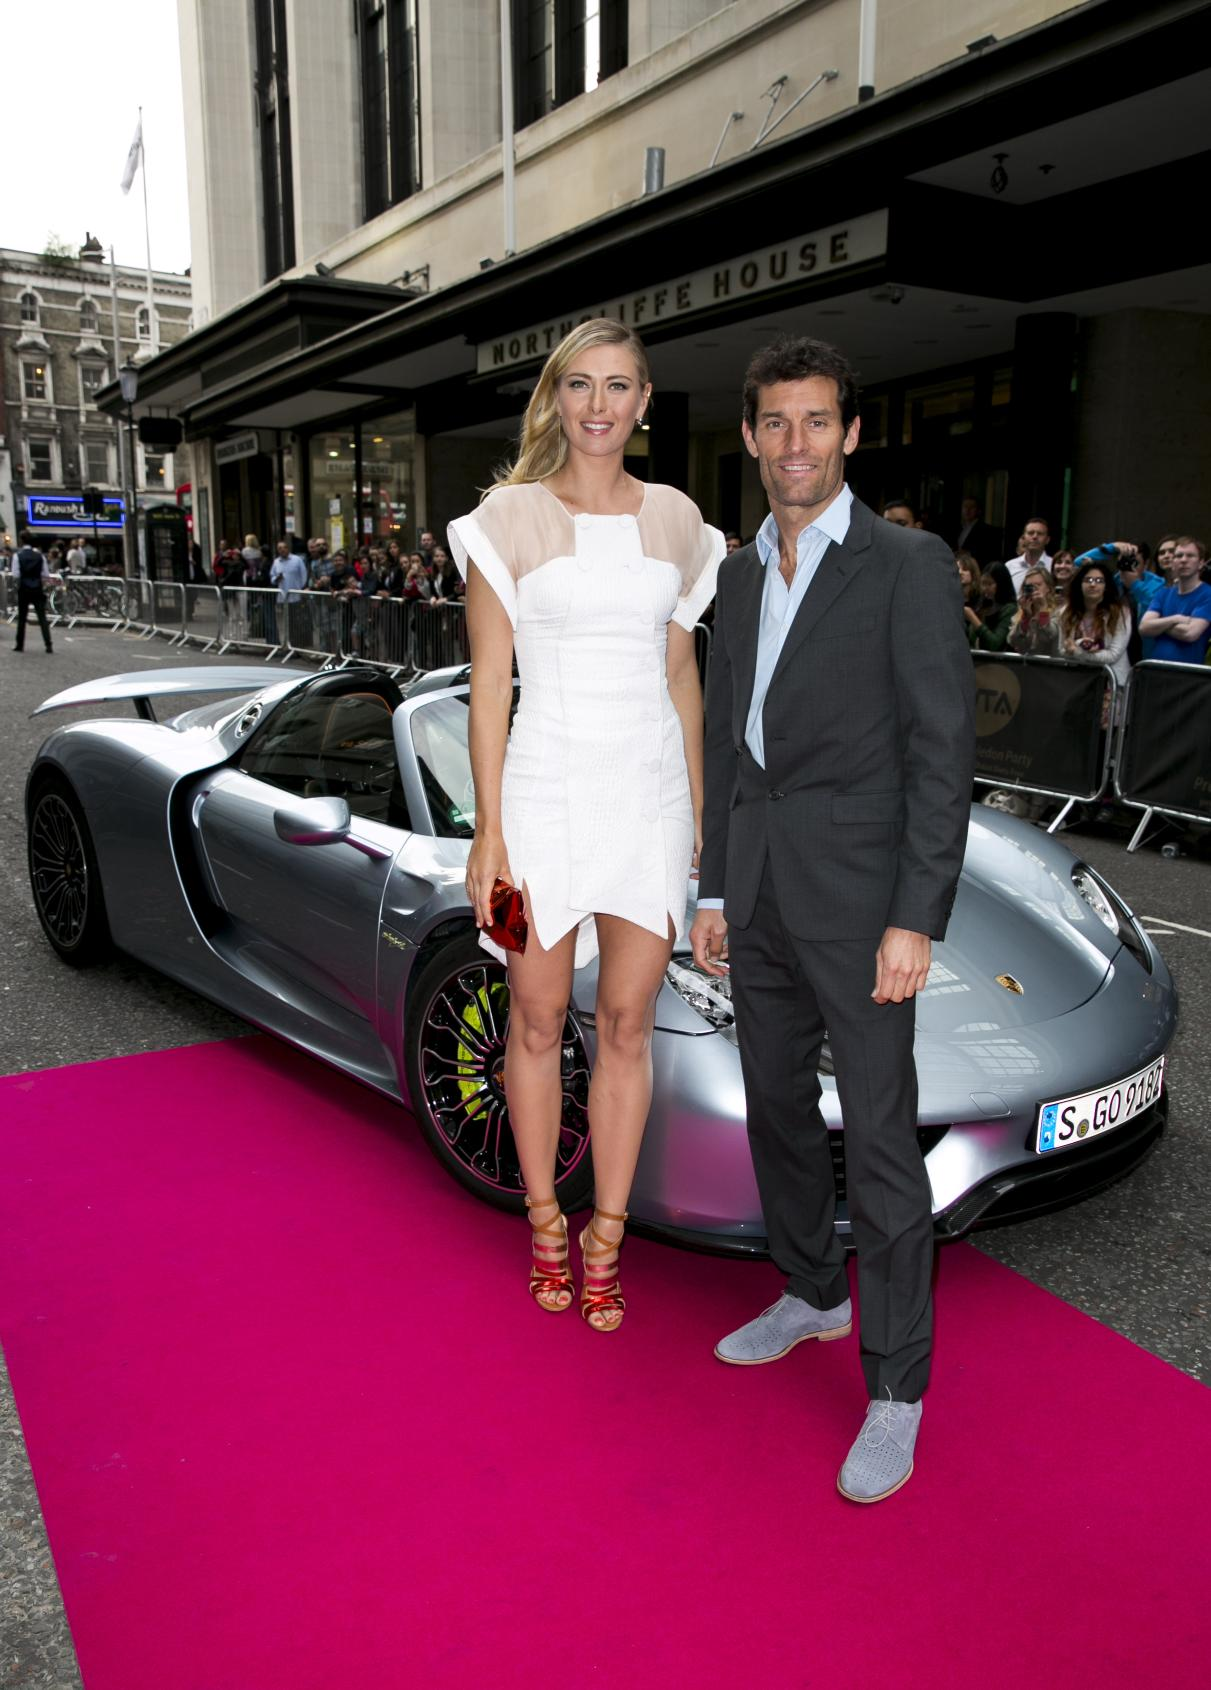 sharapova-and-mark-webber-get-off-a-porsche-918-spyder-at-pre-wimbledon-party-photo-gallery_2 Marvelous Porsche 918 Spyder Mark Webber Cars Trend